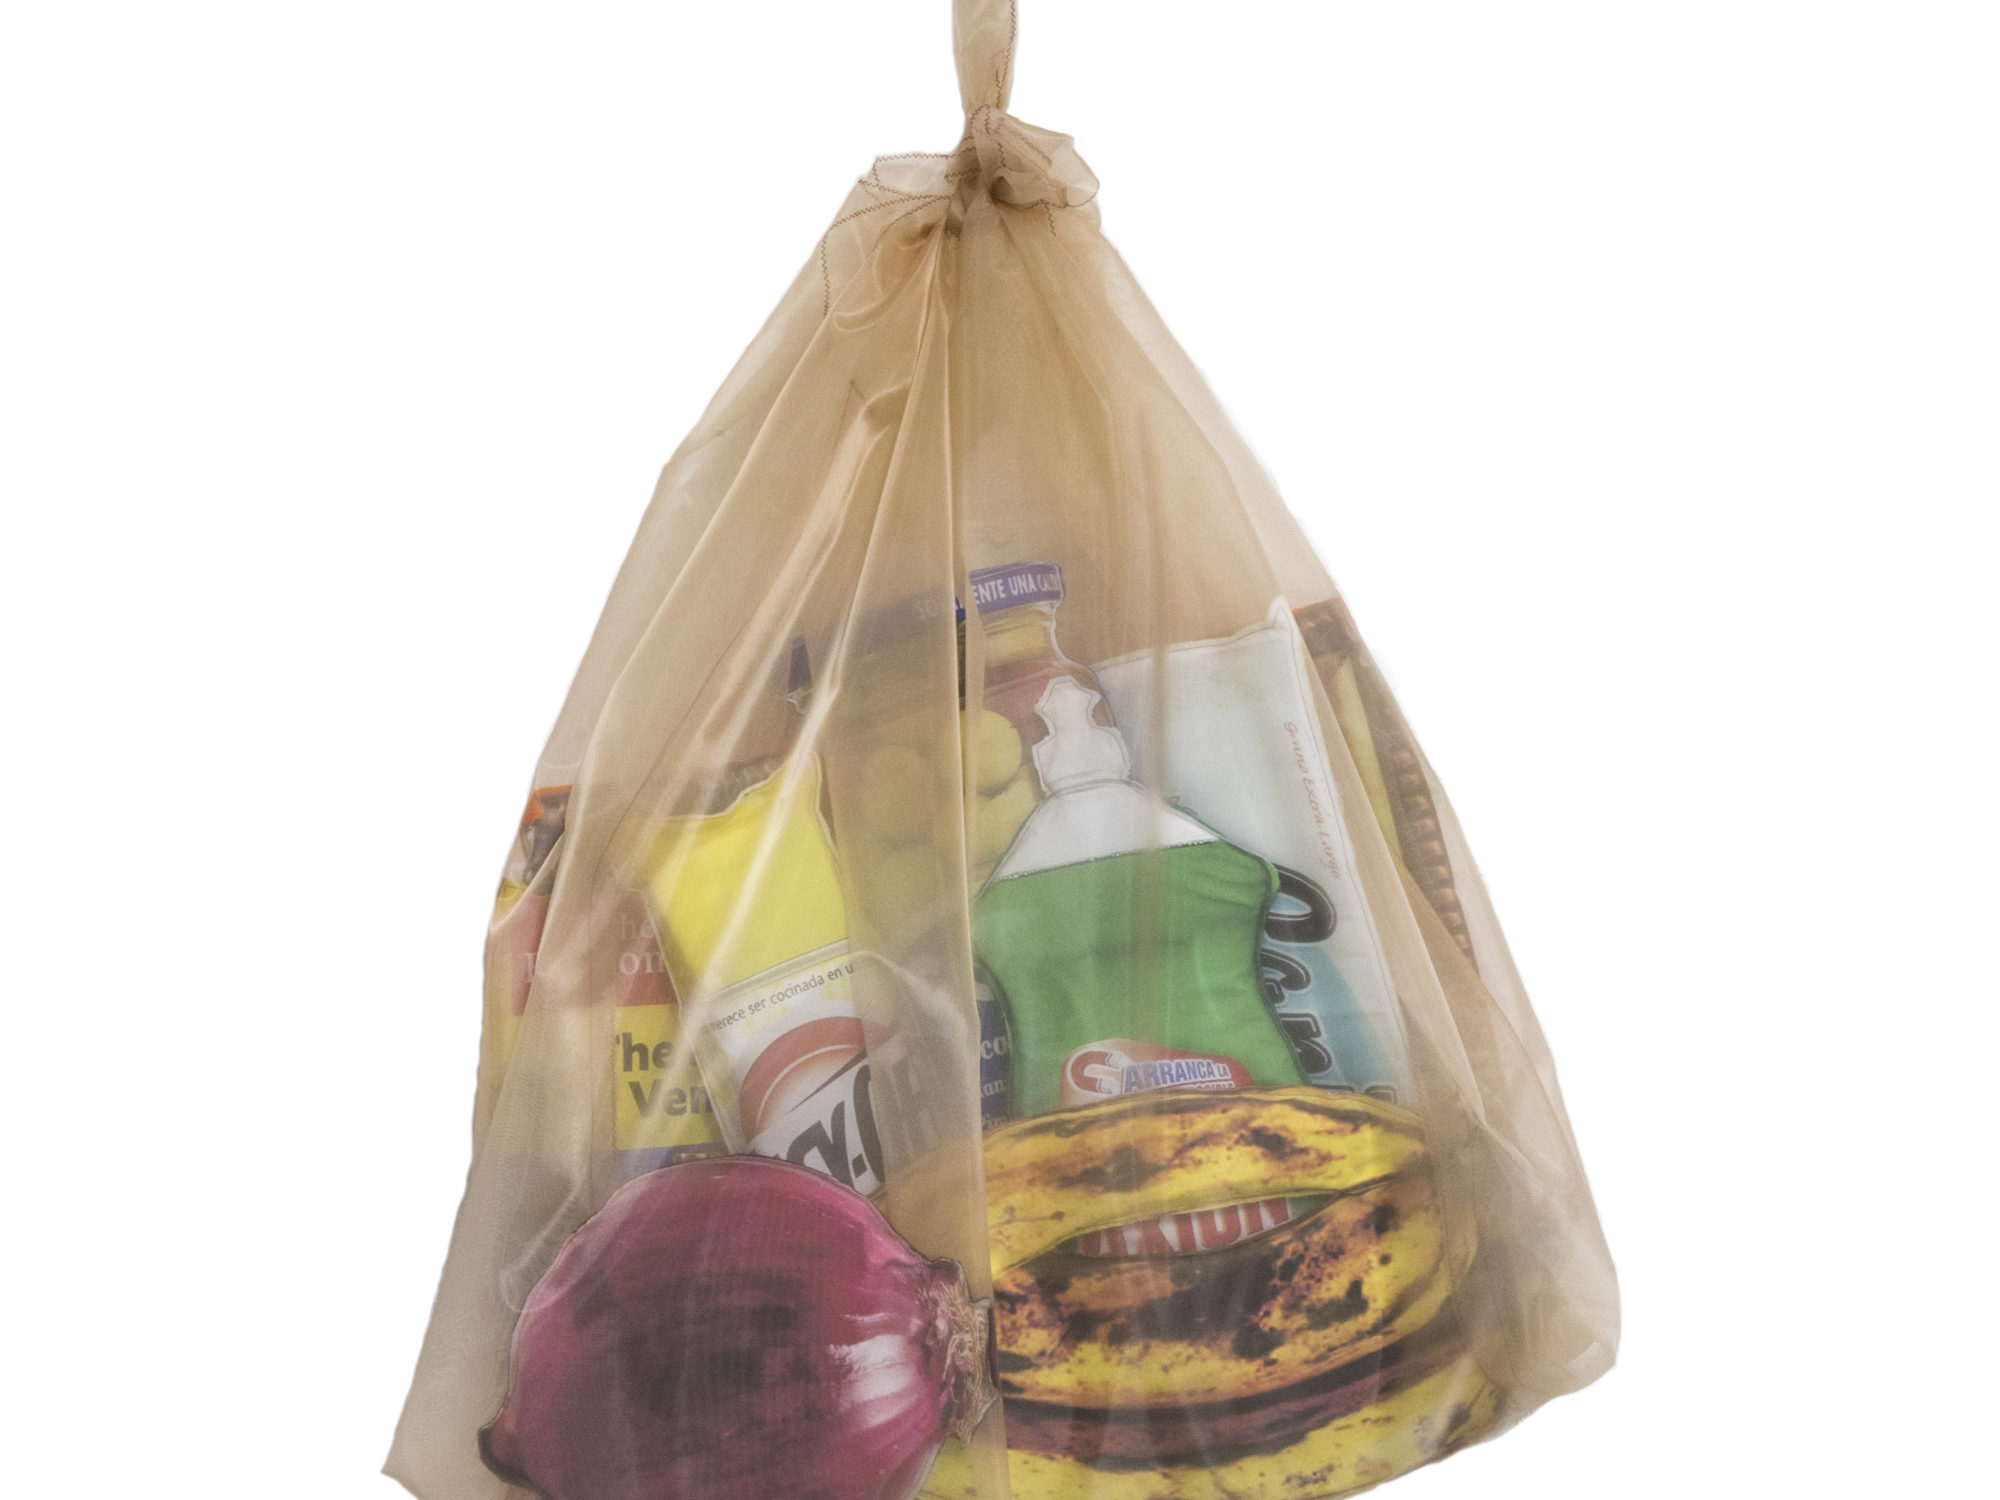 Digital print of a opaque tan grocery bag filled with goods such as dish soap, bananas, and a red onion.